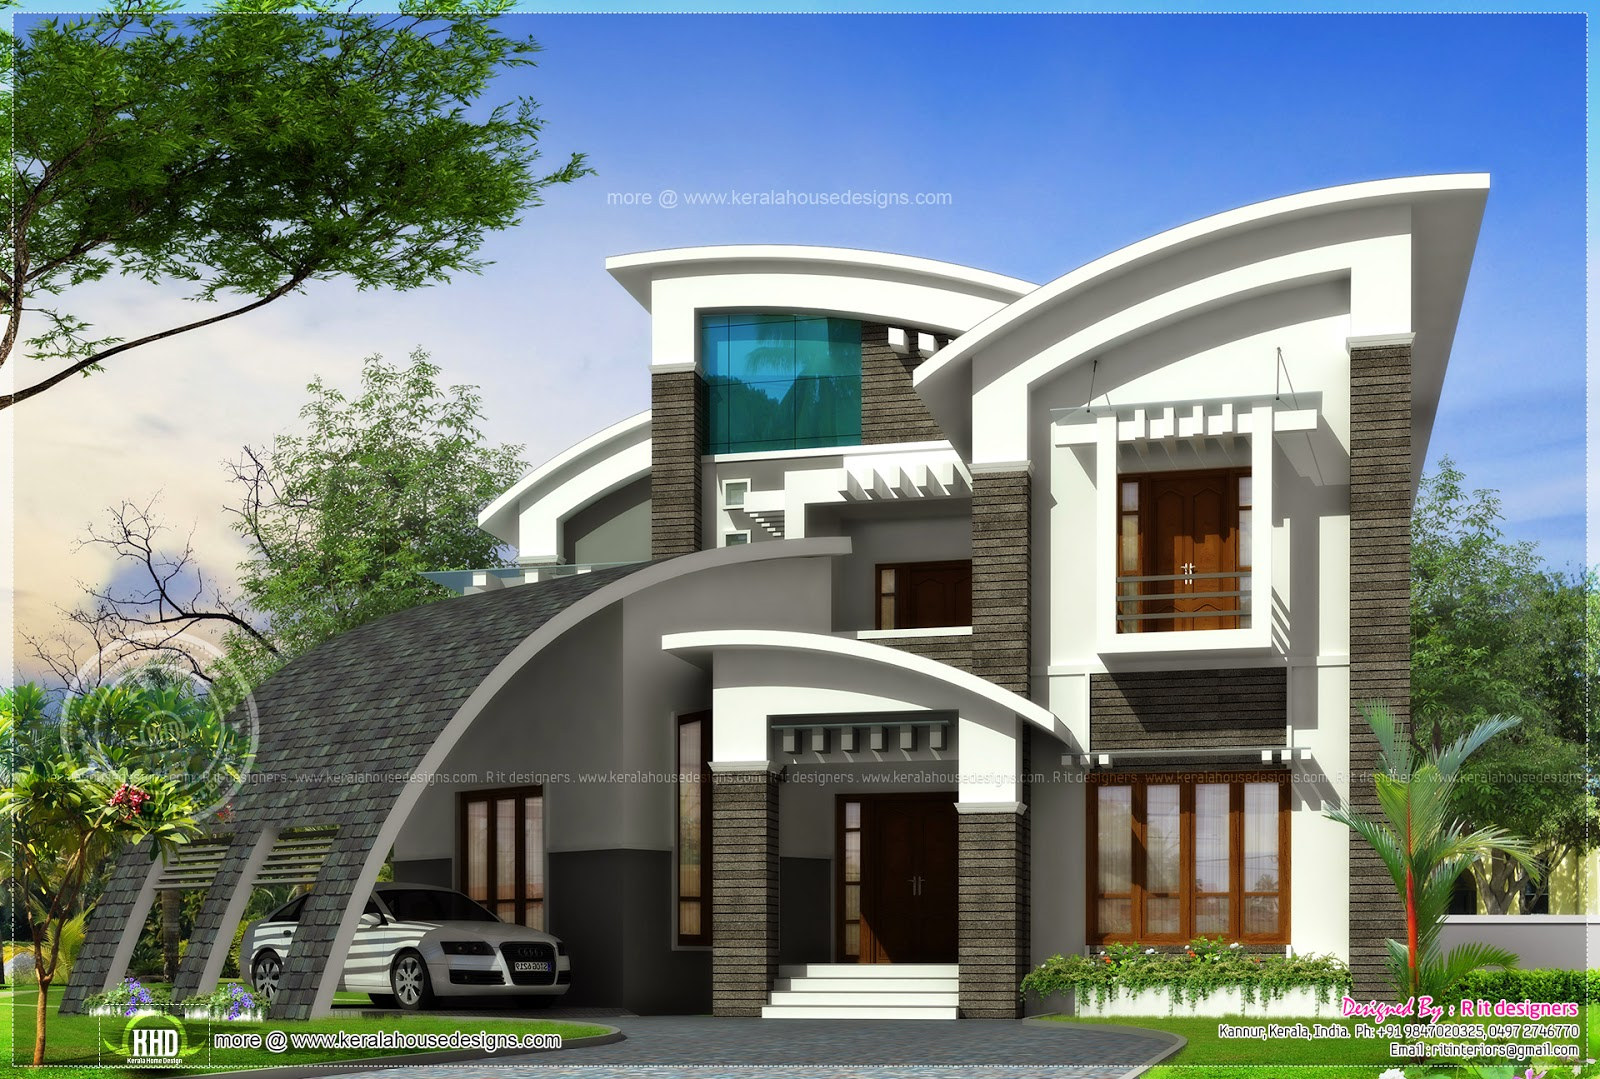 Super luxury ultra modern house design kerala home Contemporary style house